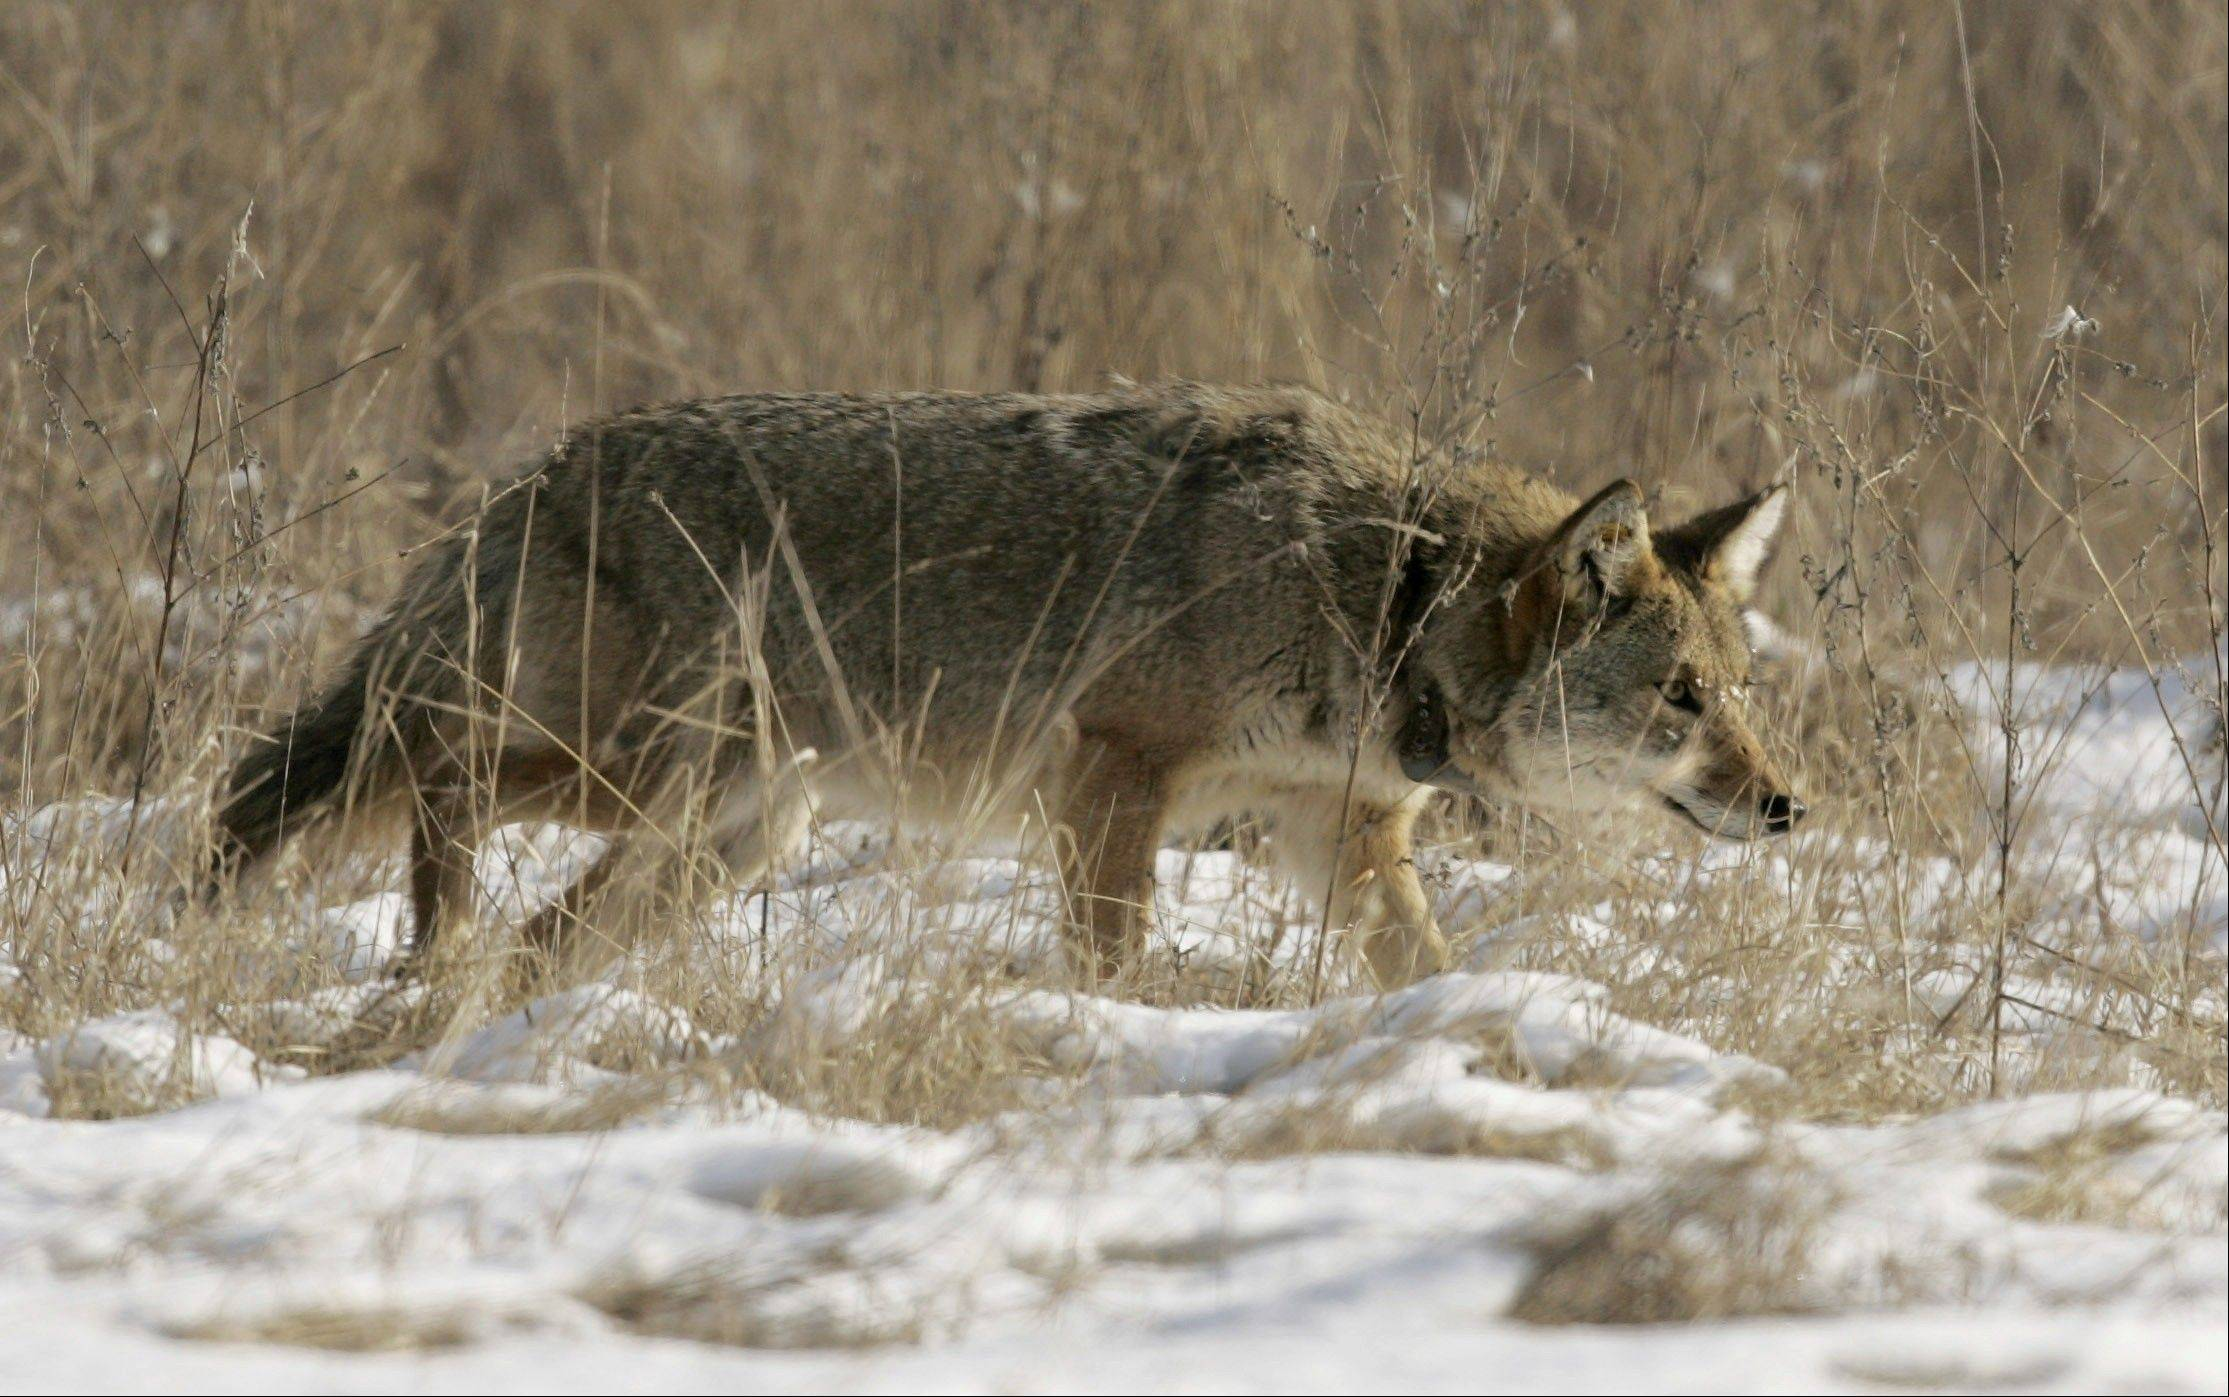 A coyote prowls a snow-covered field in the suburbs.